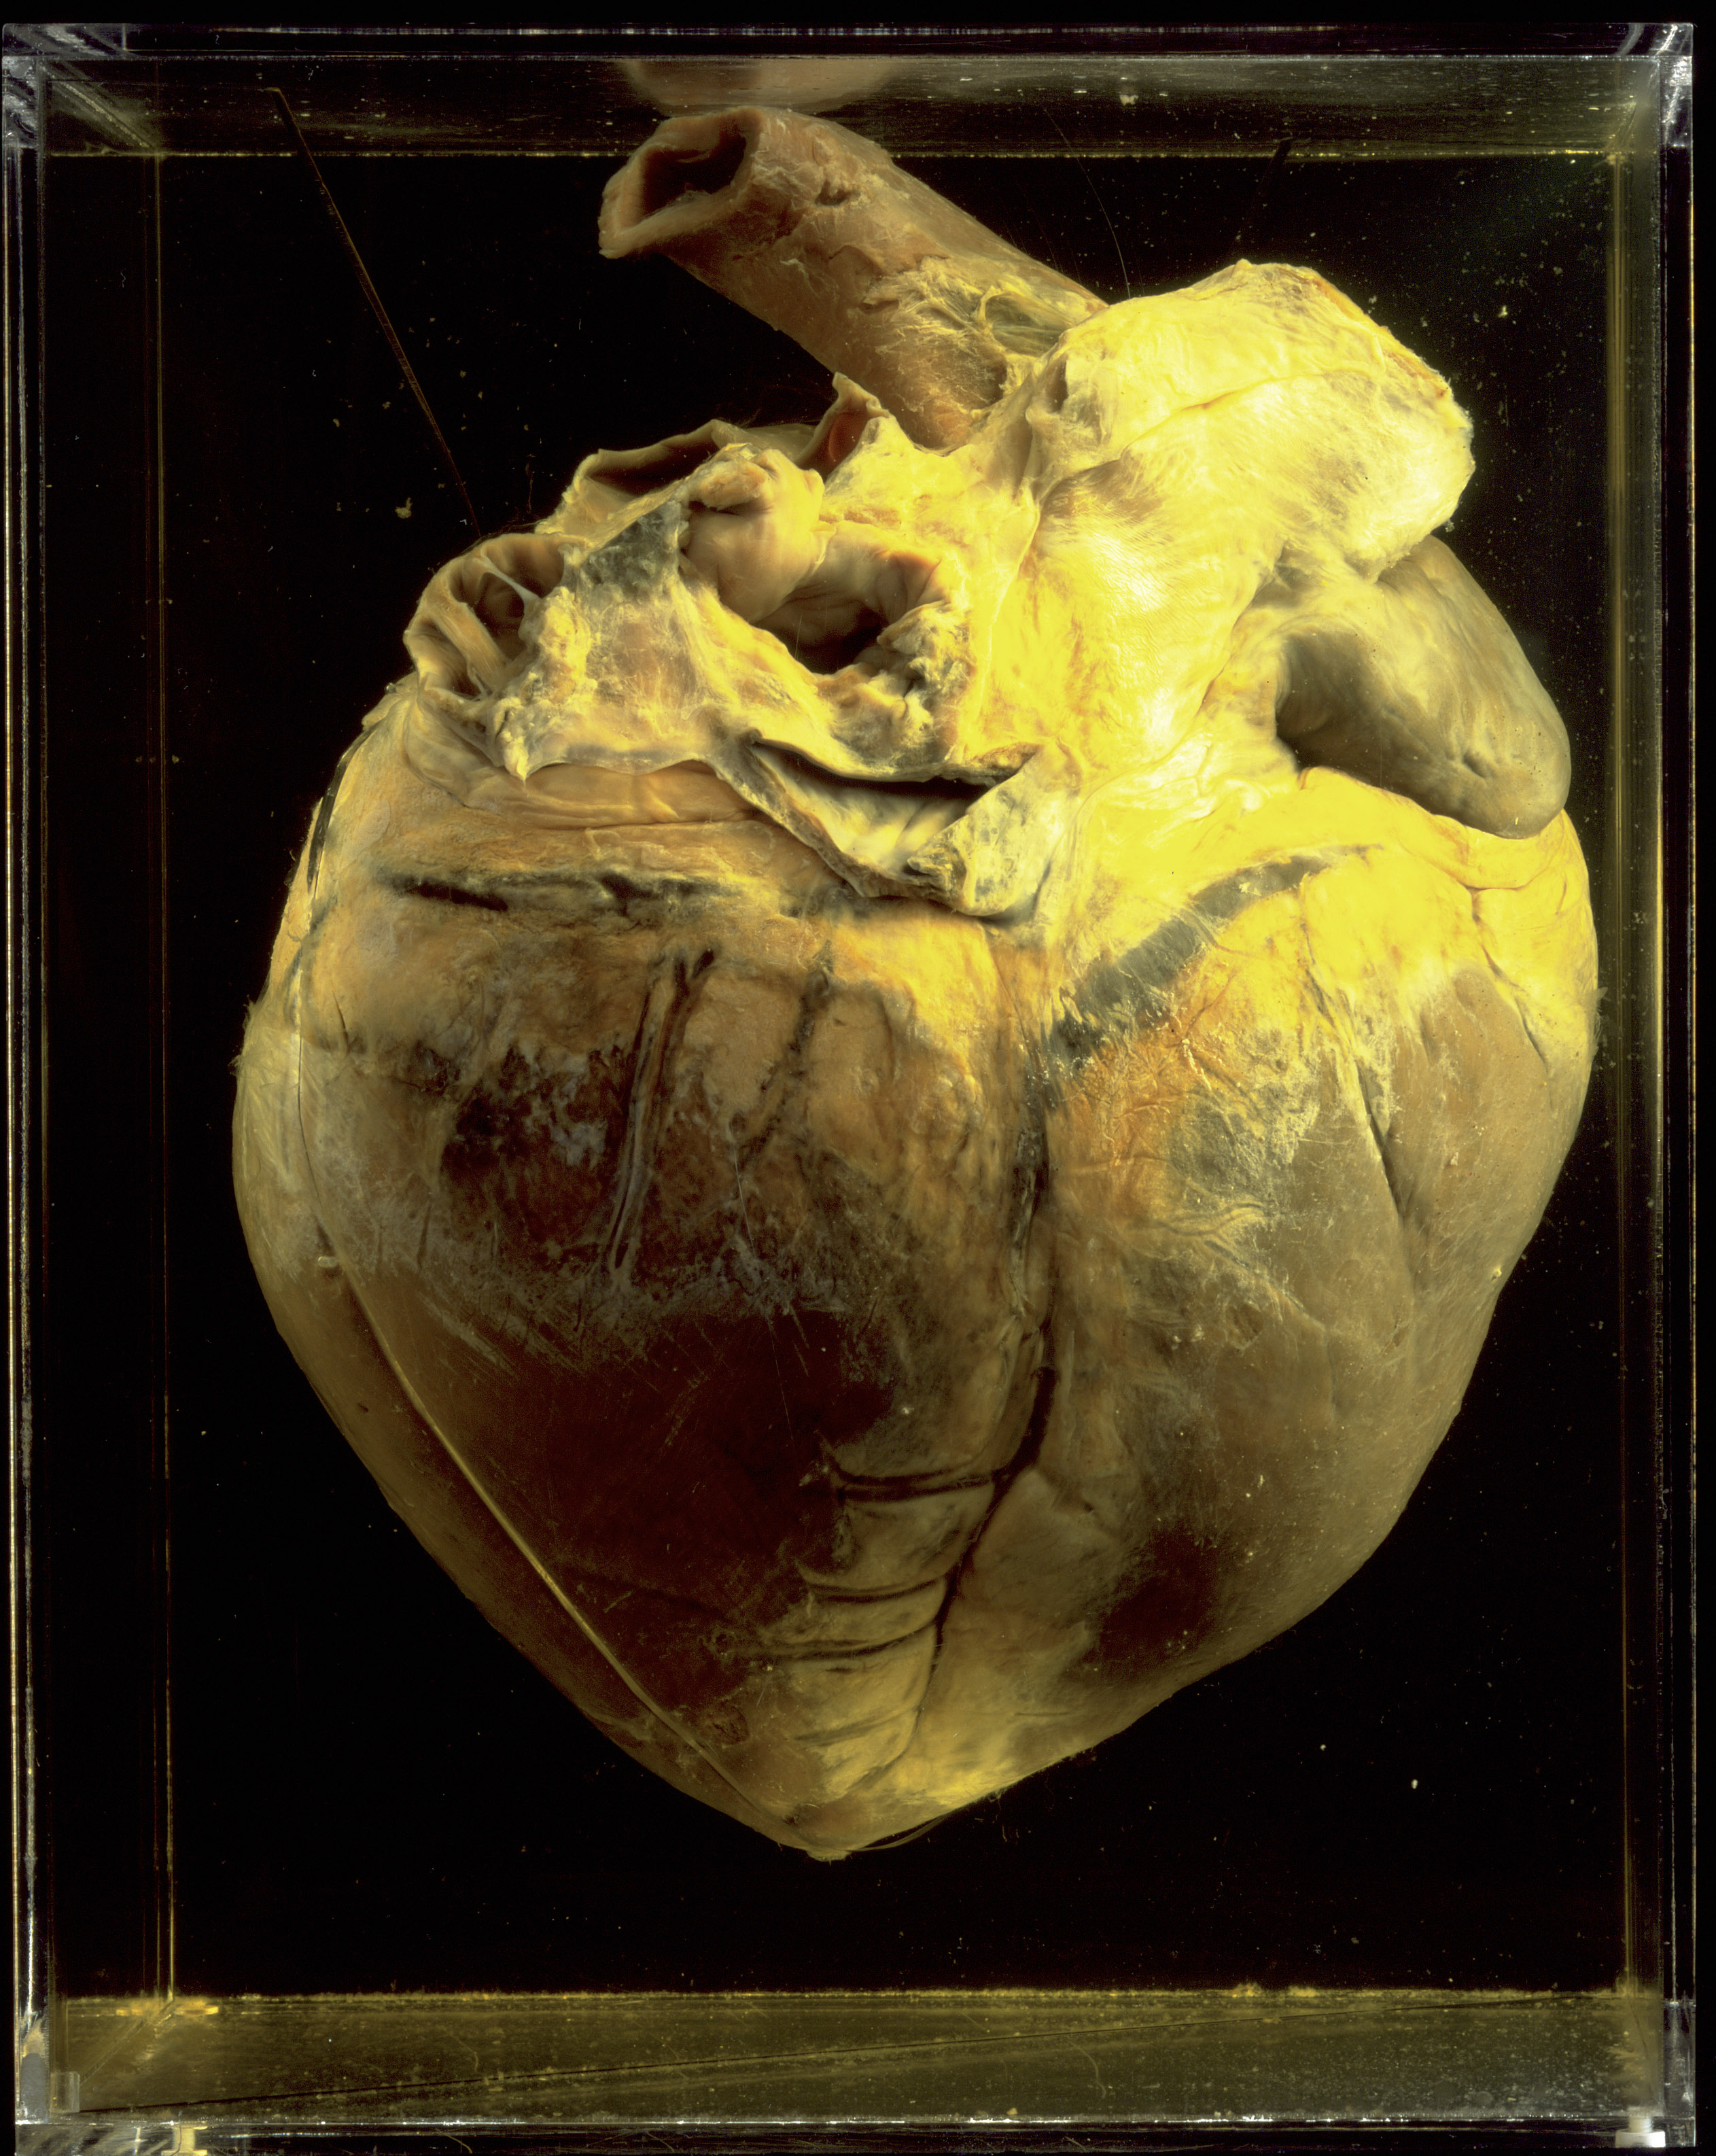 Phar Lap's heart on display at the National Museum of Australia.